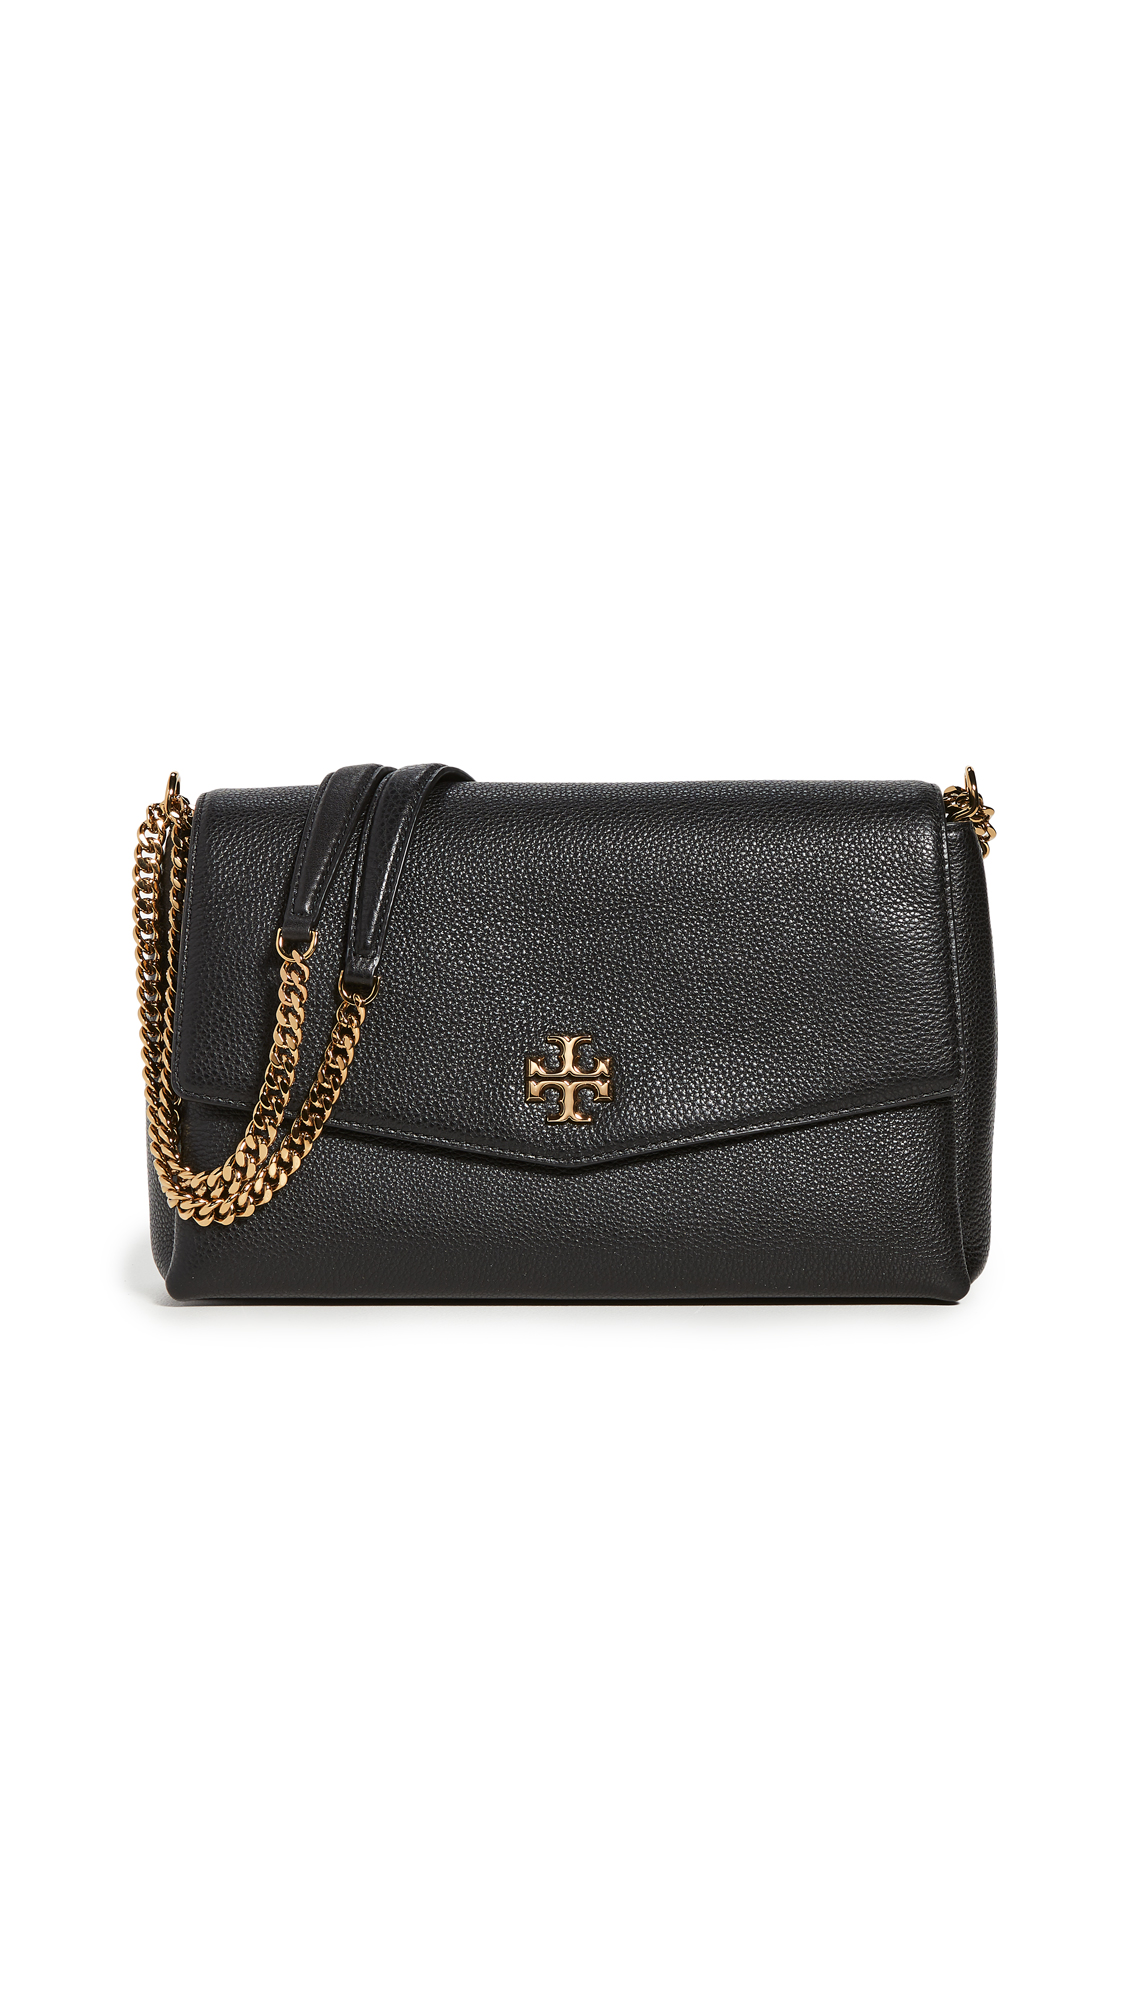 Tory Burch Kira Pebbled Convertible Shoulder Bag